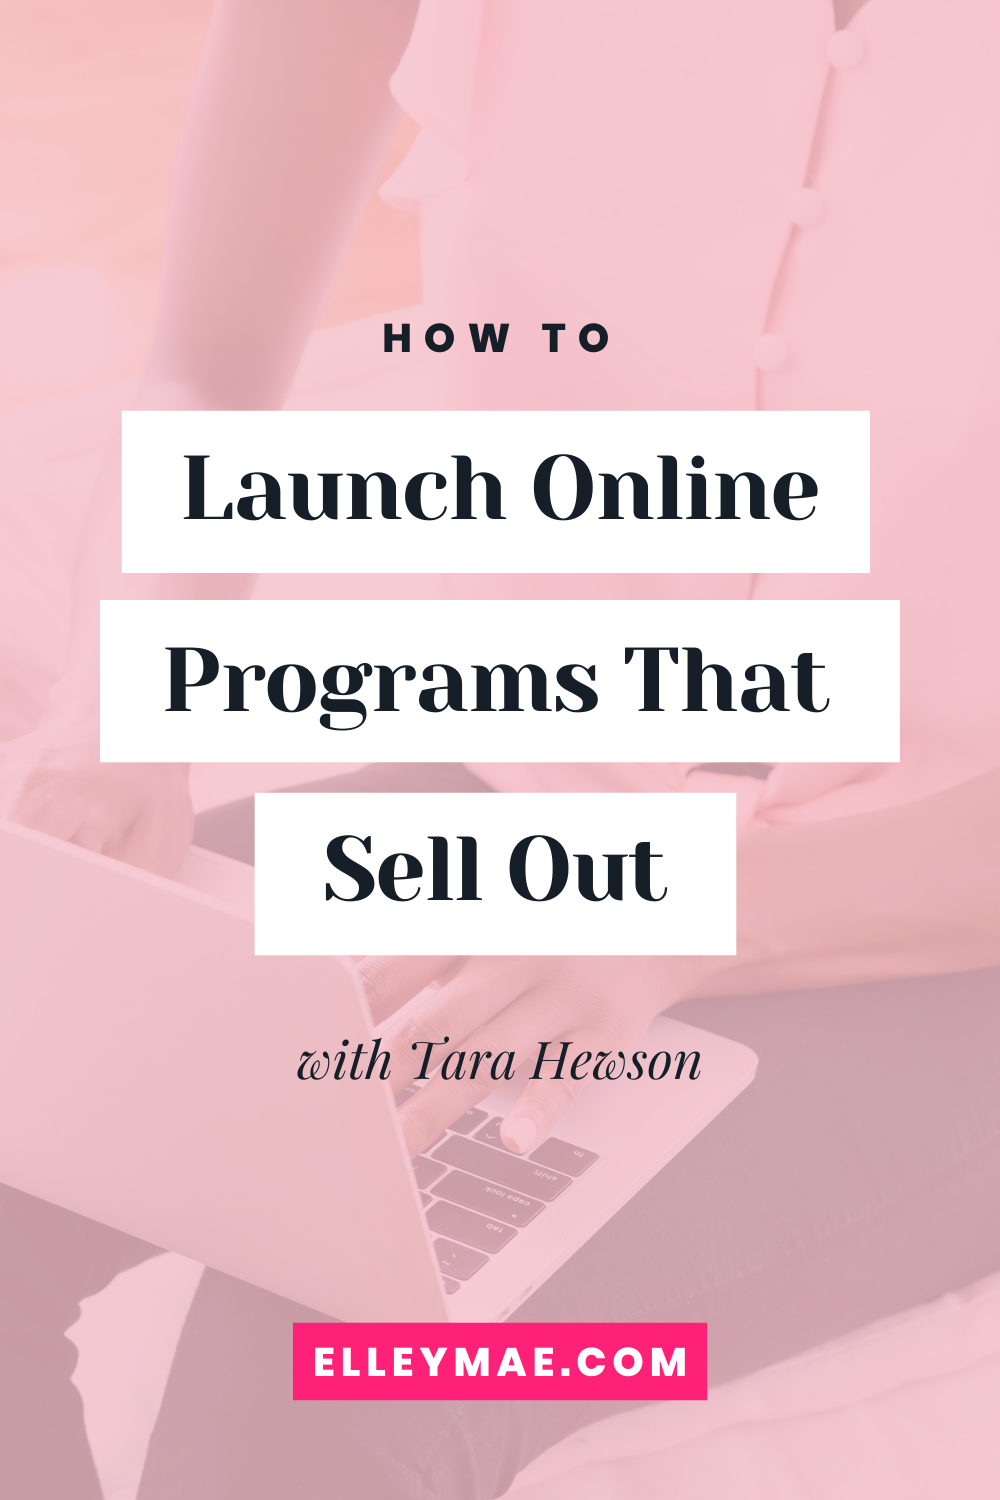 055. Having a $32k Launch During A Global Pandemic with Tara Hewson